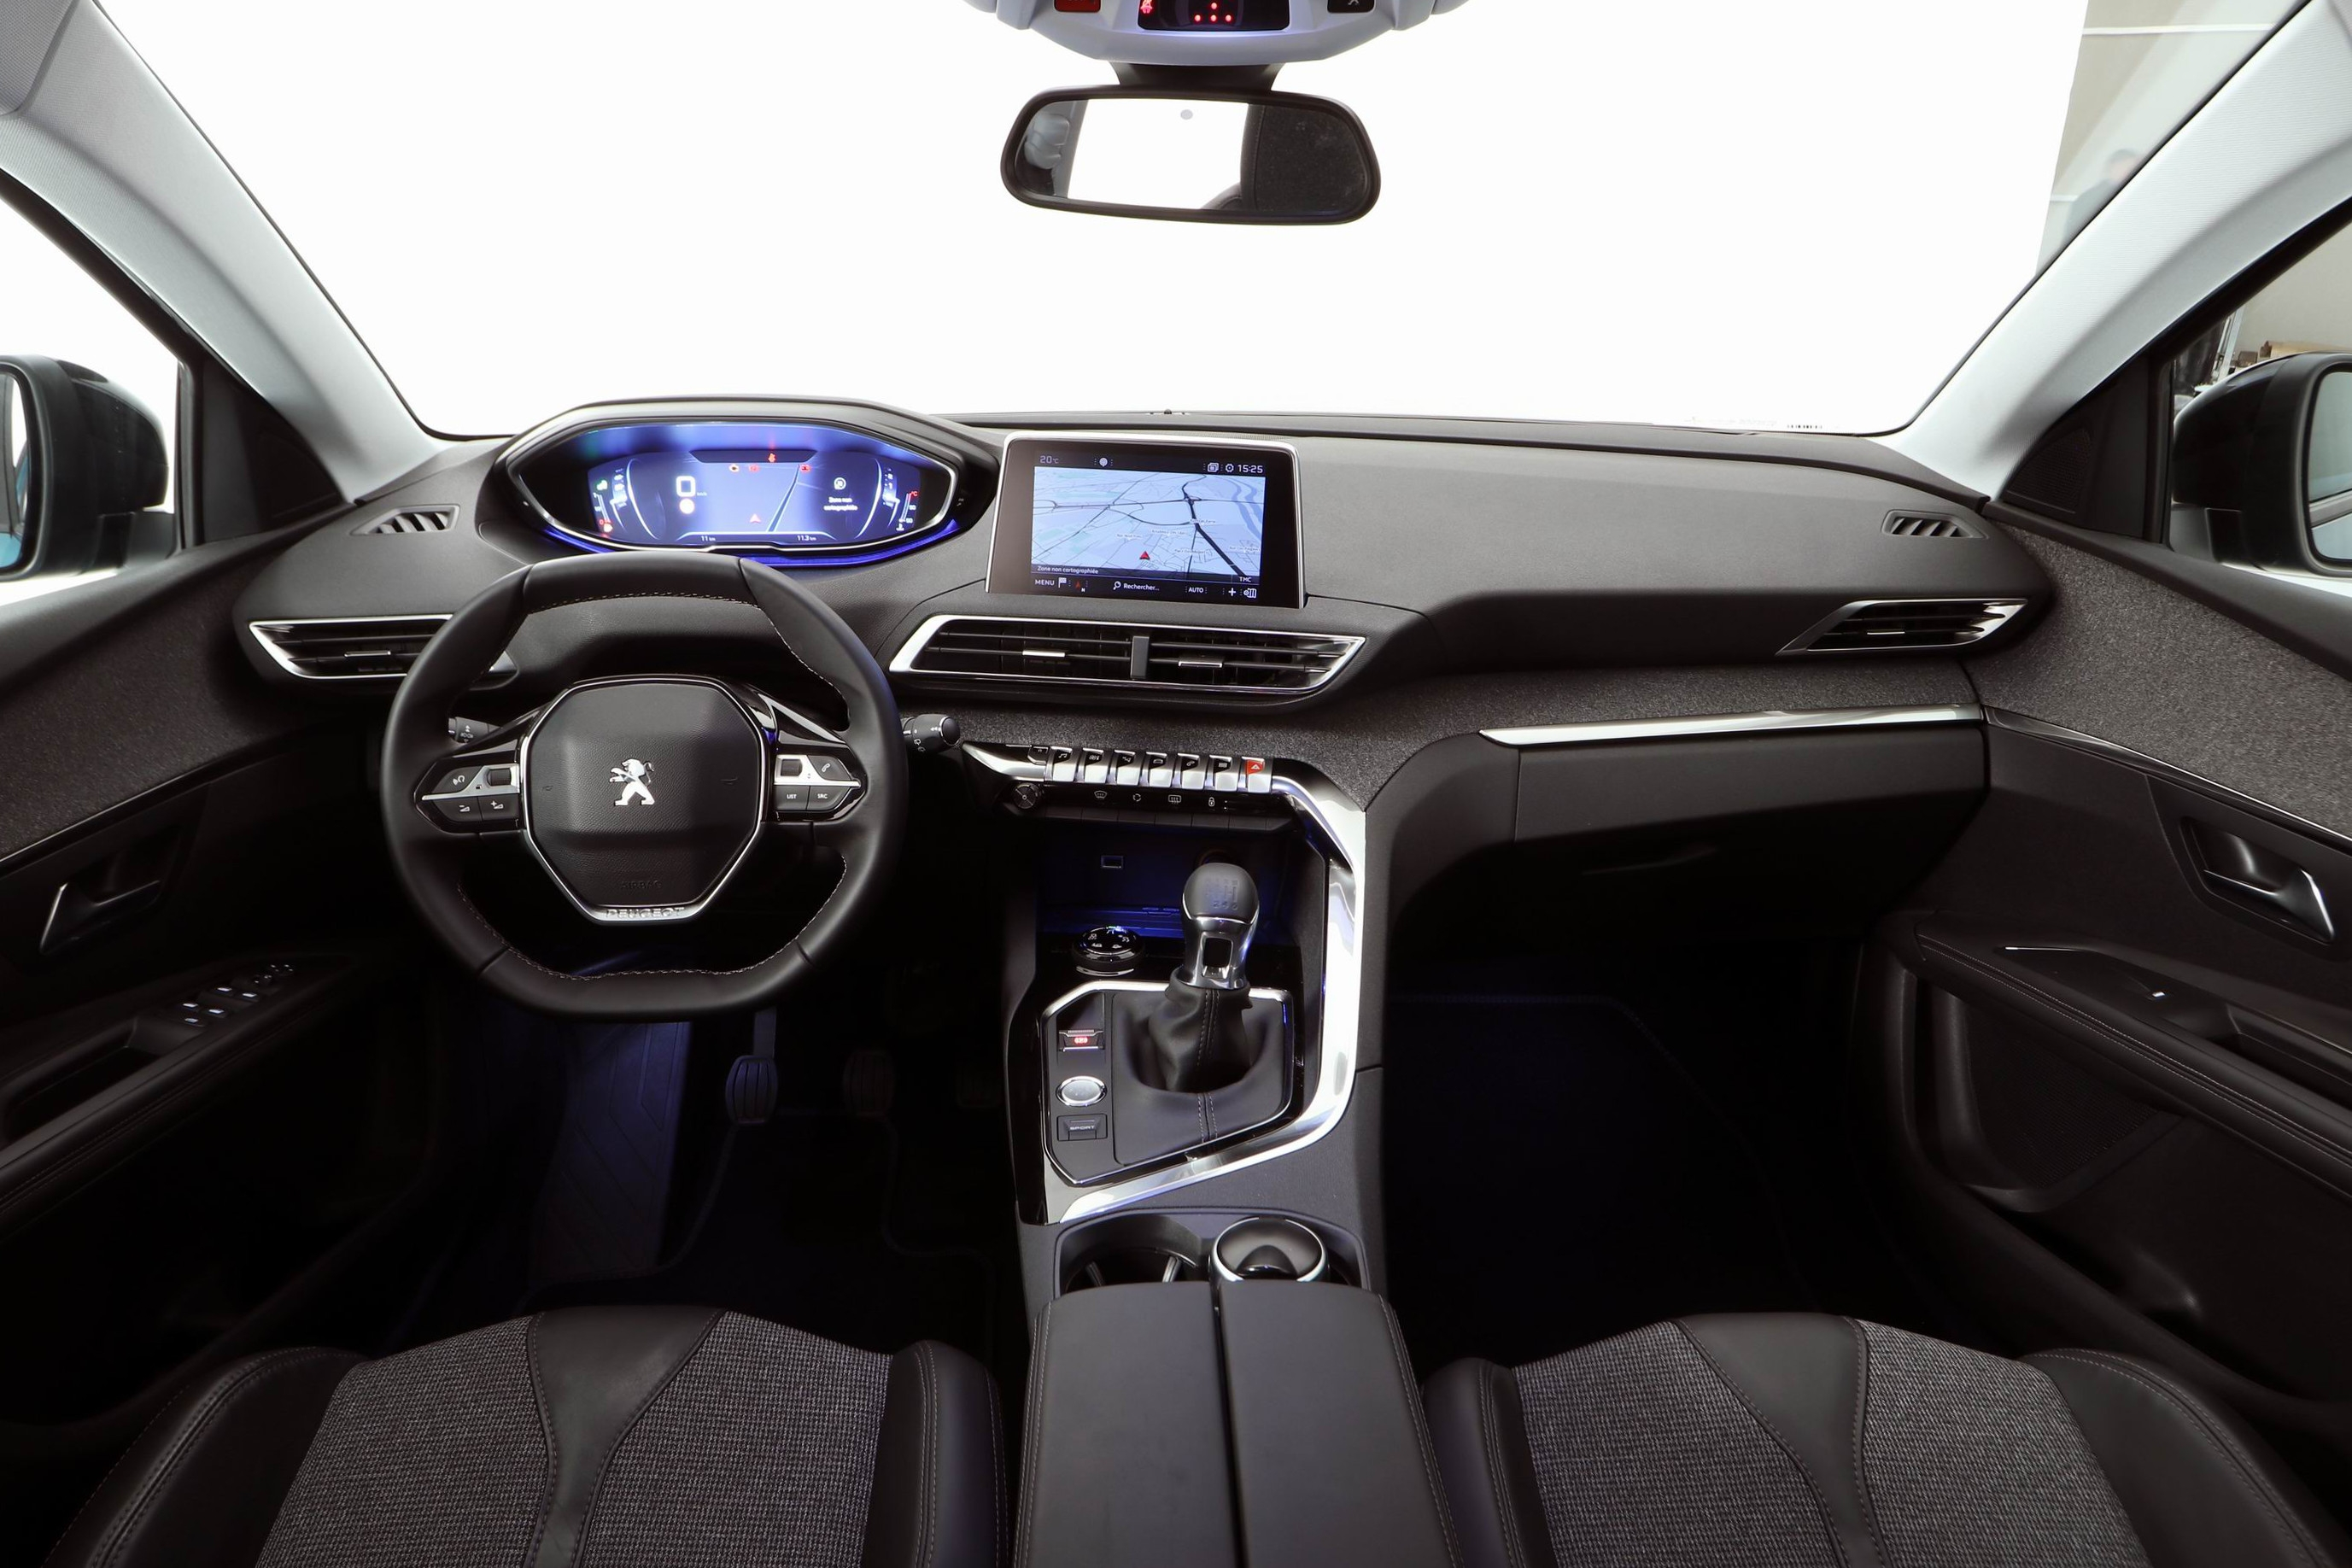 Pr sentation vid o nouveau peugeot 5008 victime de la mode for Interieur 3008 allure